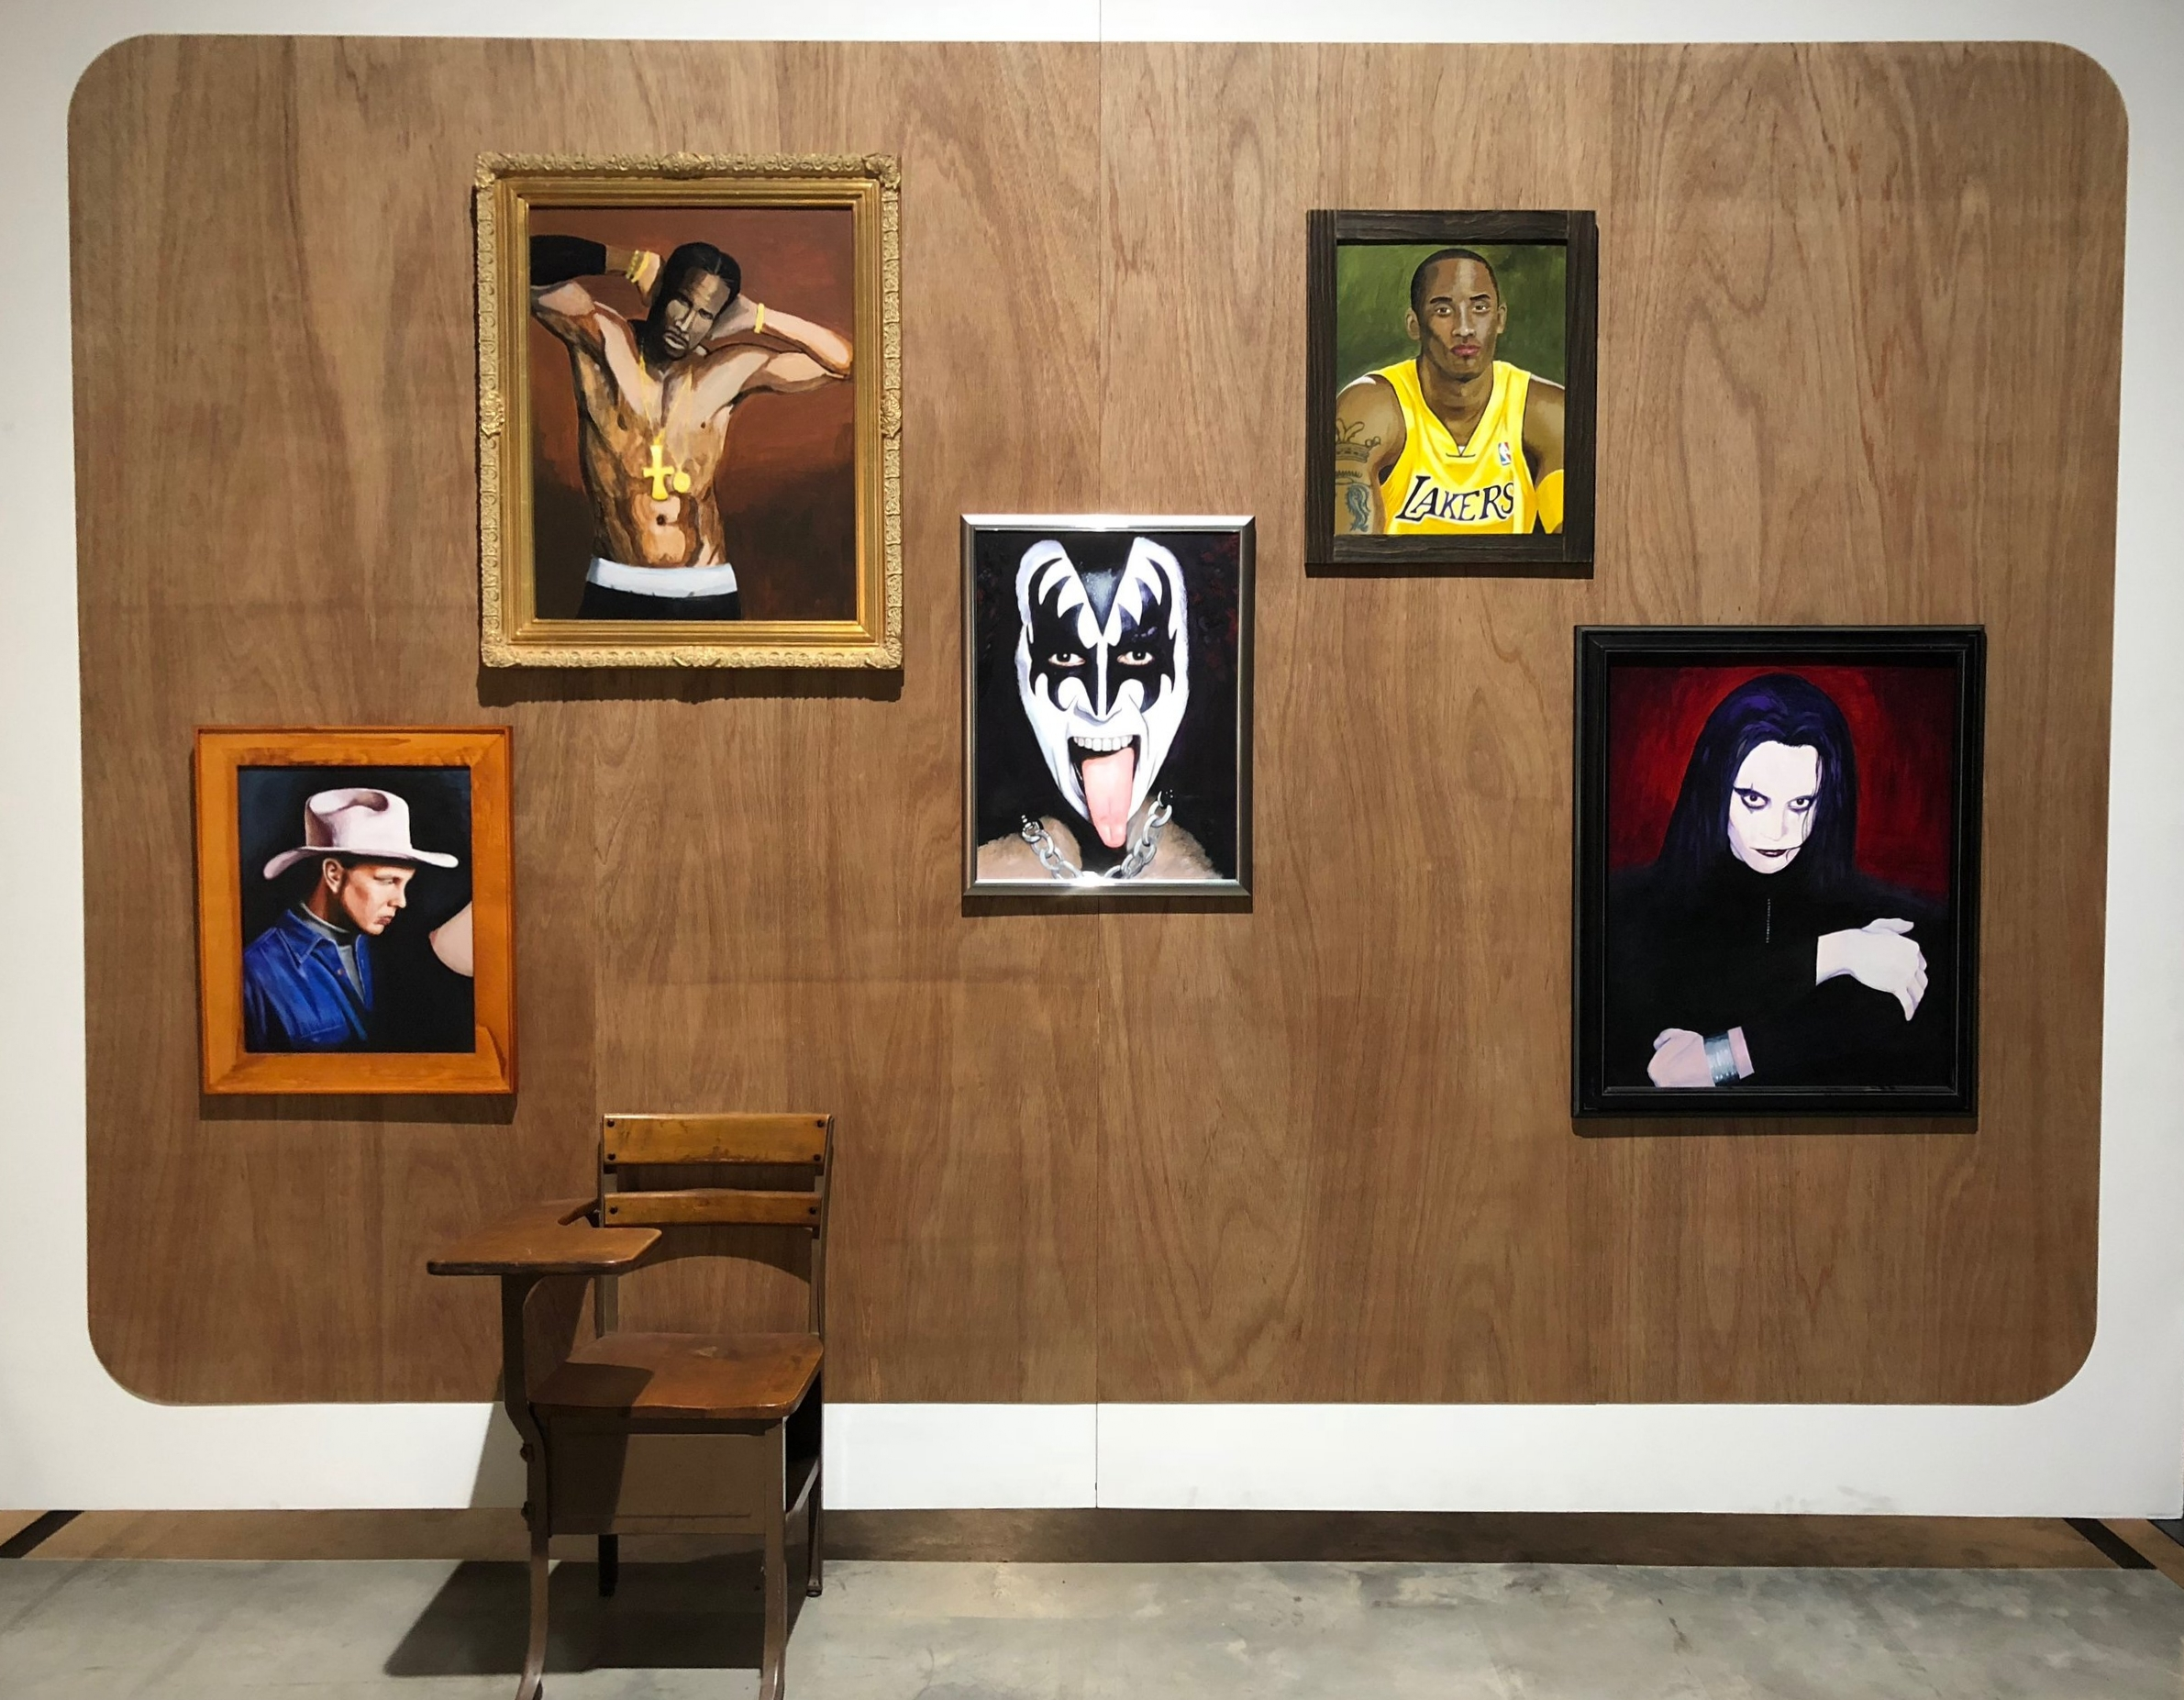 Mike Kelley,  Extracurricular Activity Projective Reconstruction #8 (Singles' Mixer) , 2004-2005, Mixed media with video projection and photographs, 112 x 300 x 169 inches. Photo by the author.